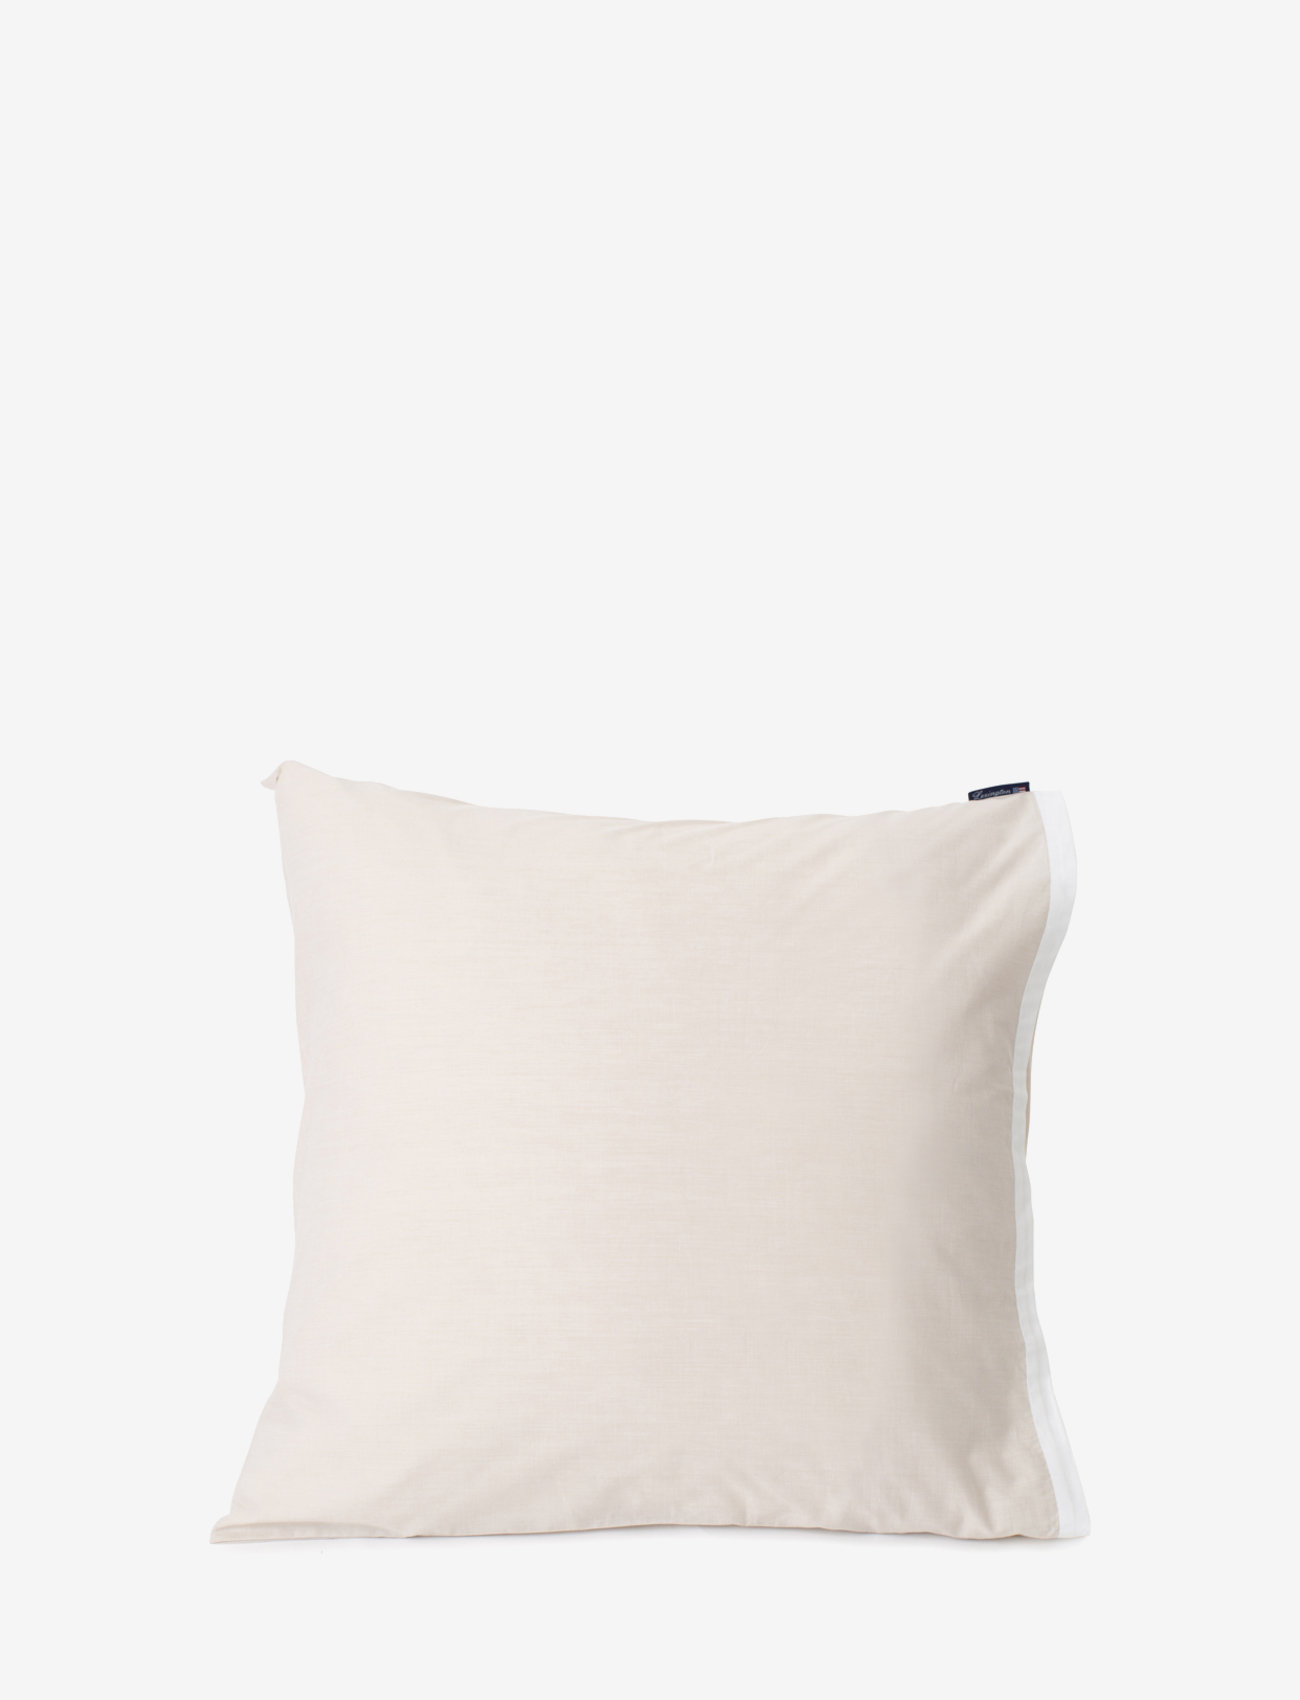 Lexington Home - Beige/White Contrast Cotton Chambray Pillowcase - taie d'oreiller - beige/white - 0